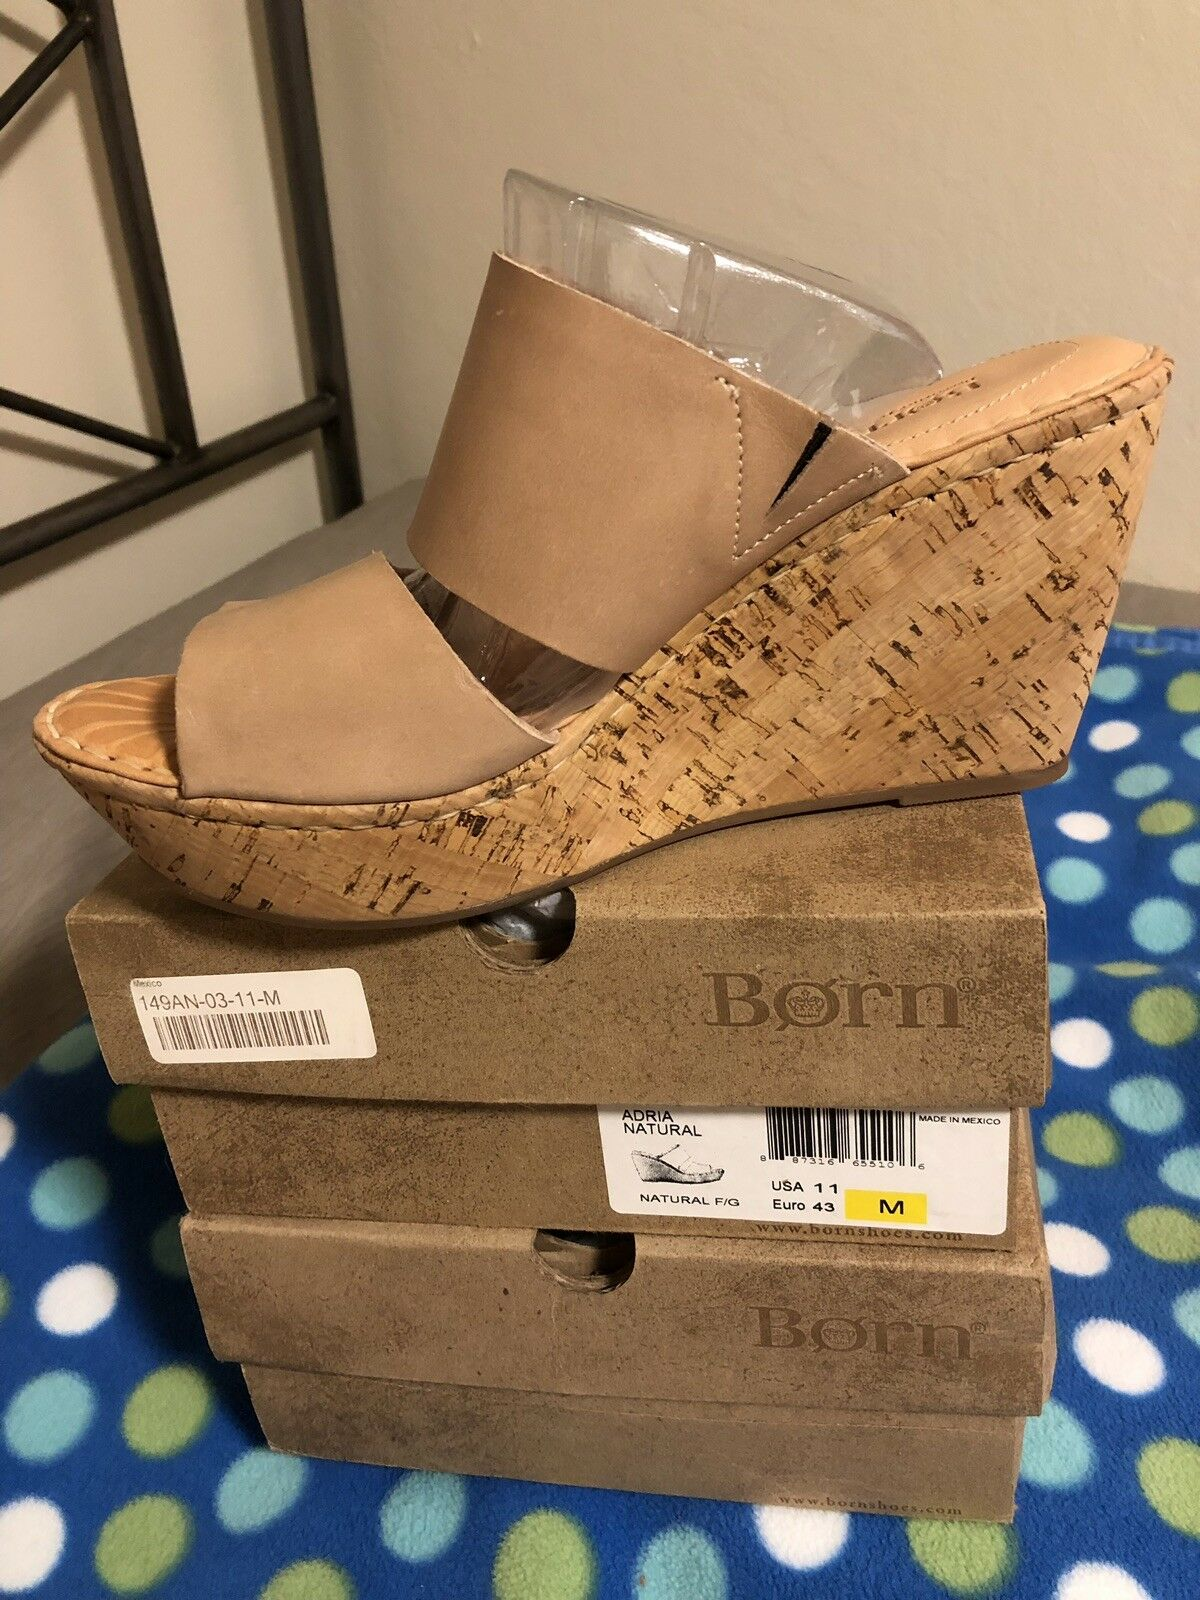 Born shoes size 11 womens